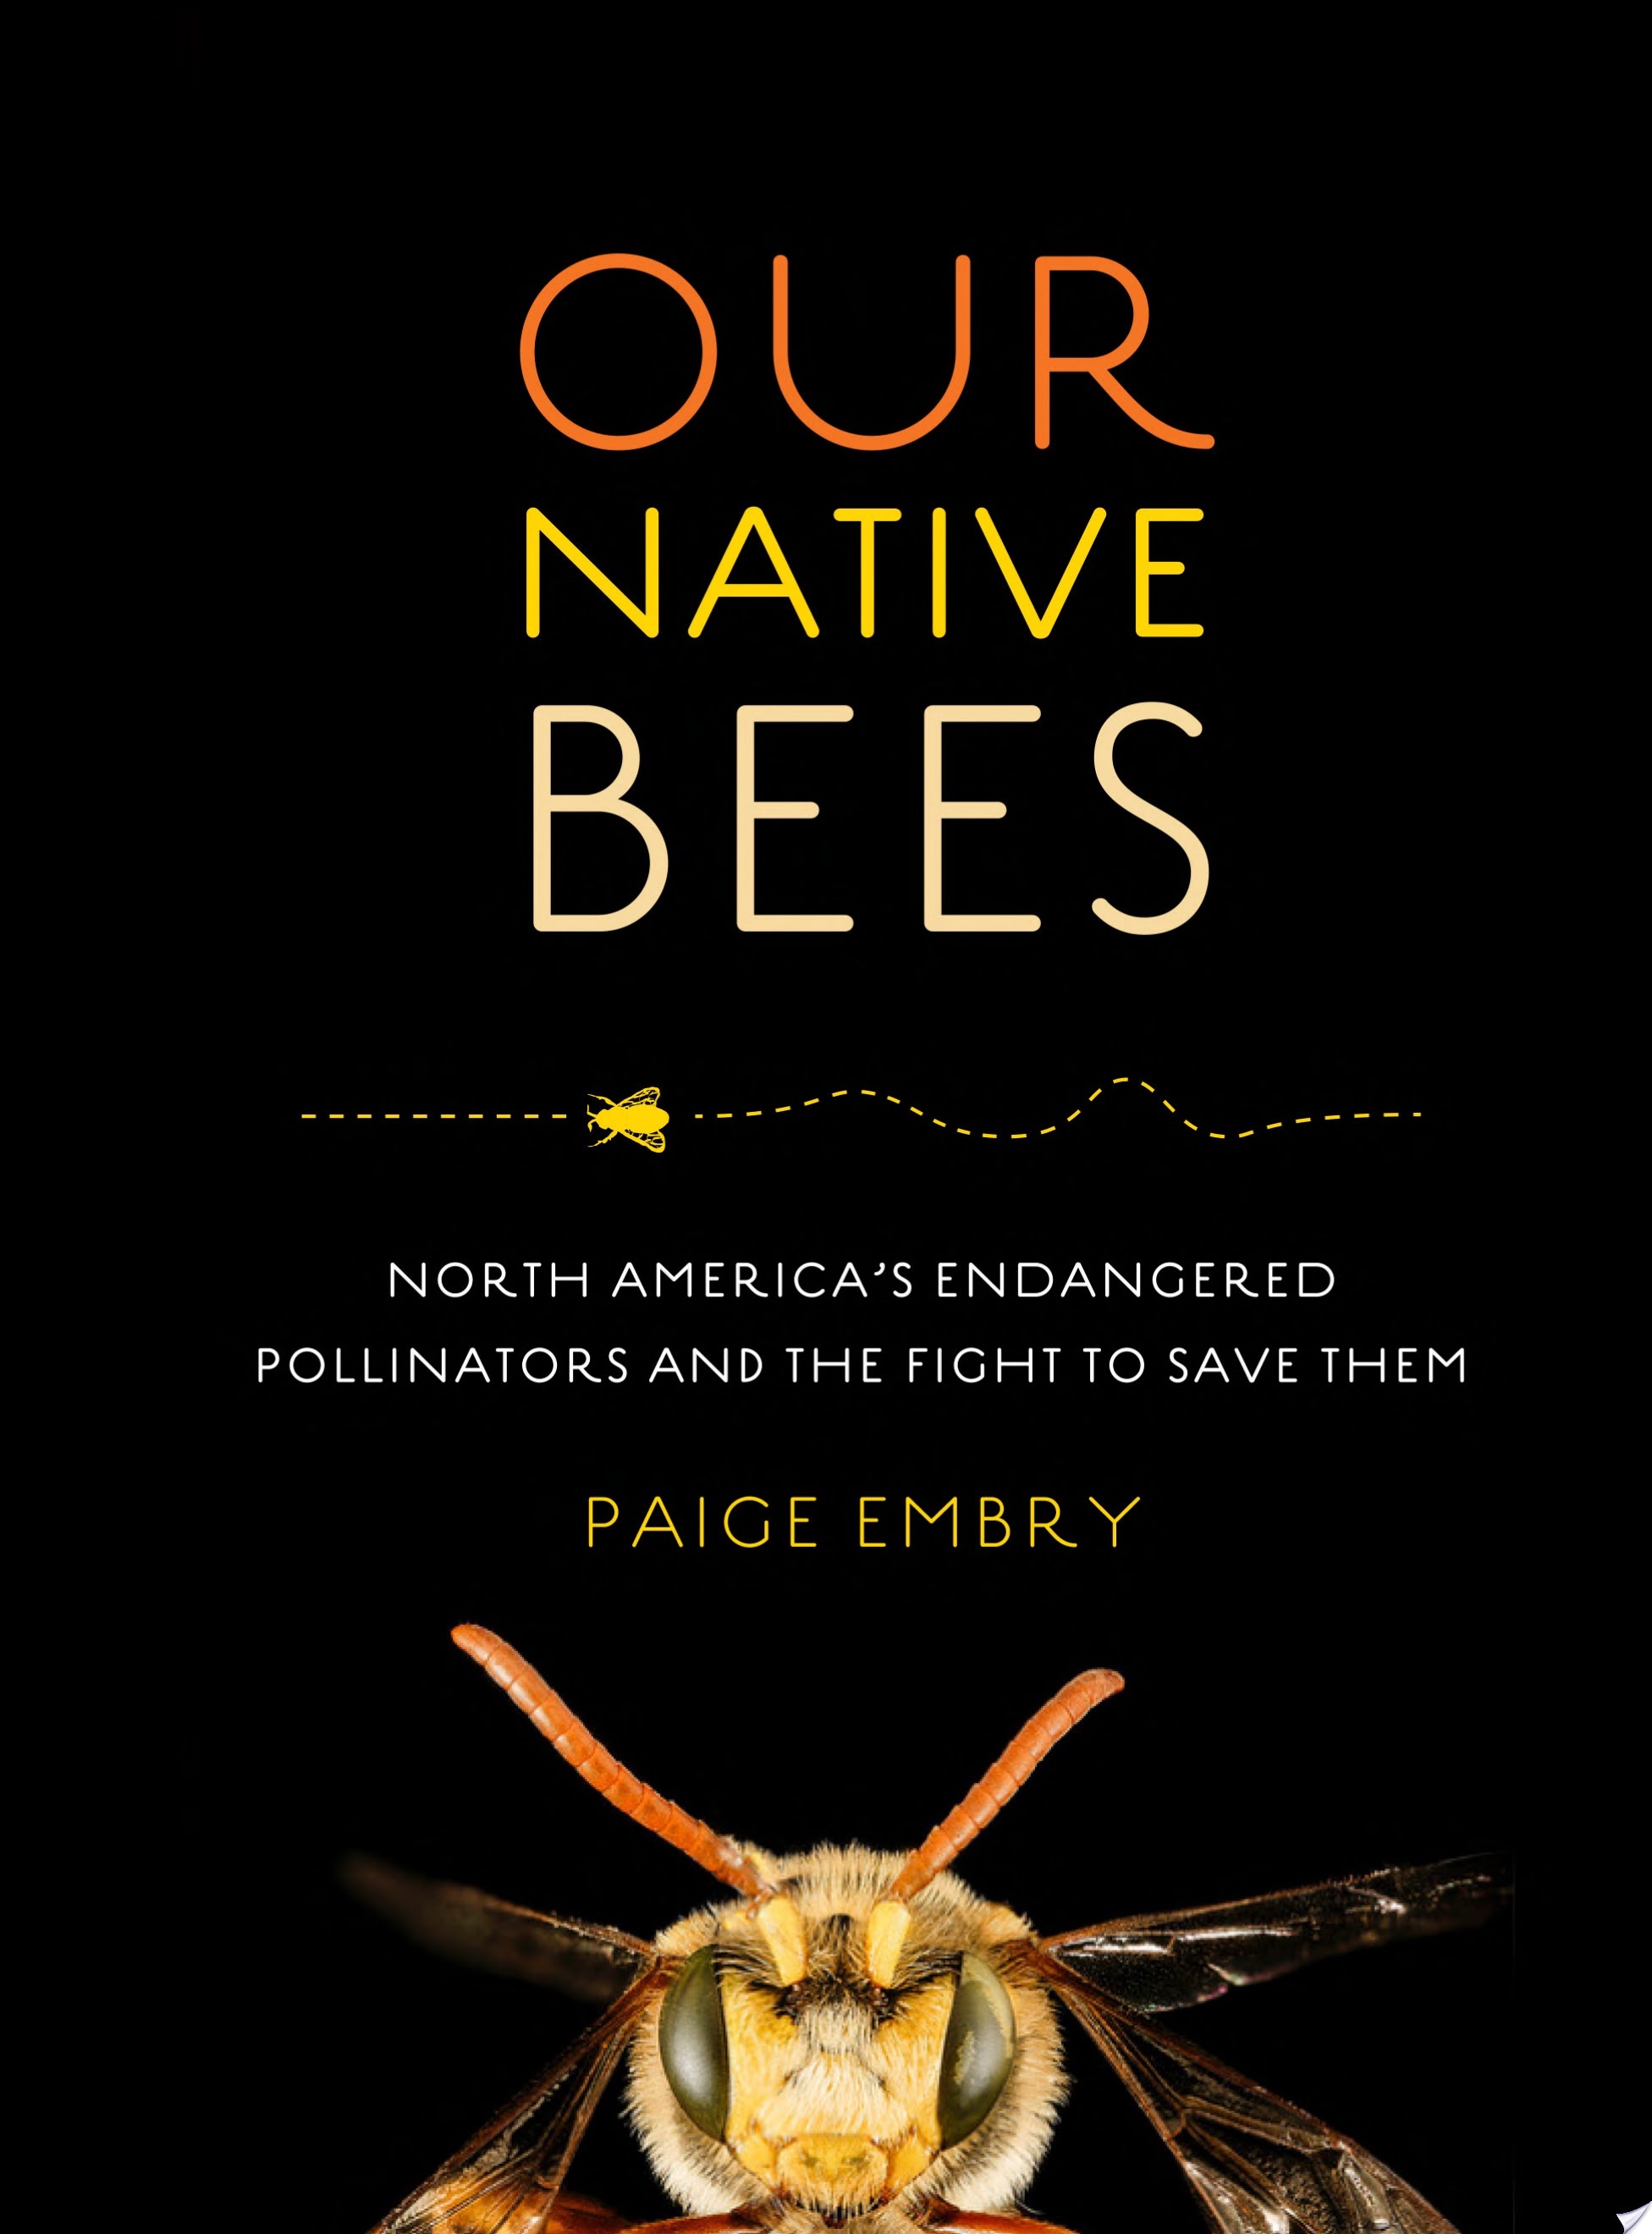 Our Native Bees.jpg